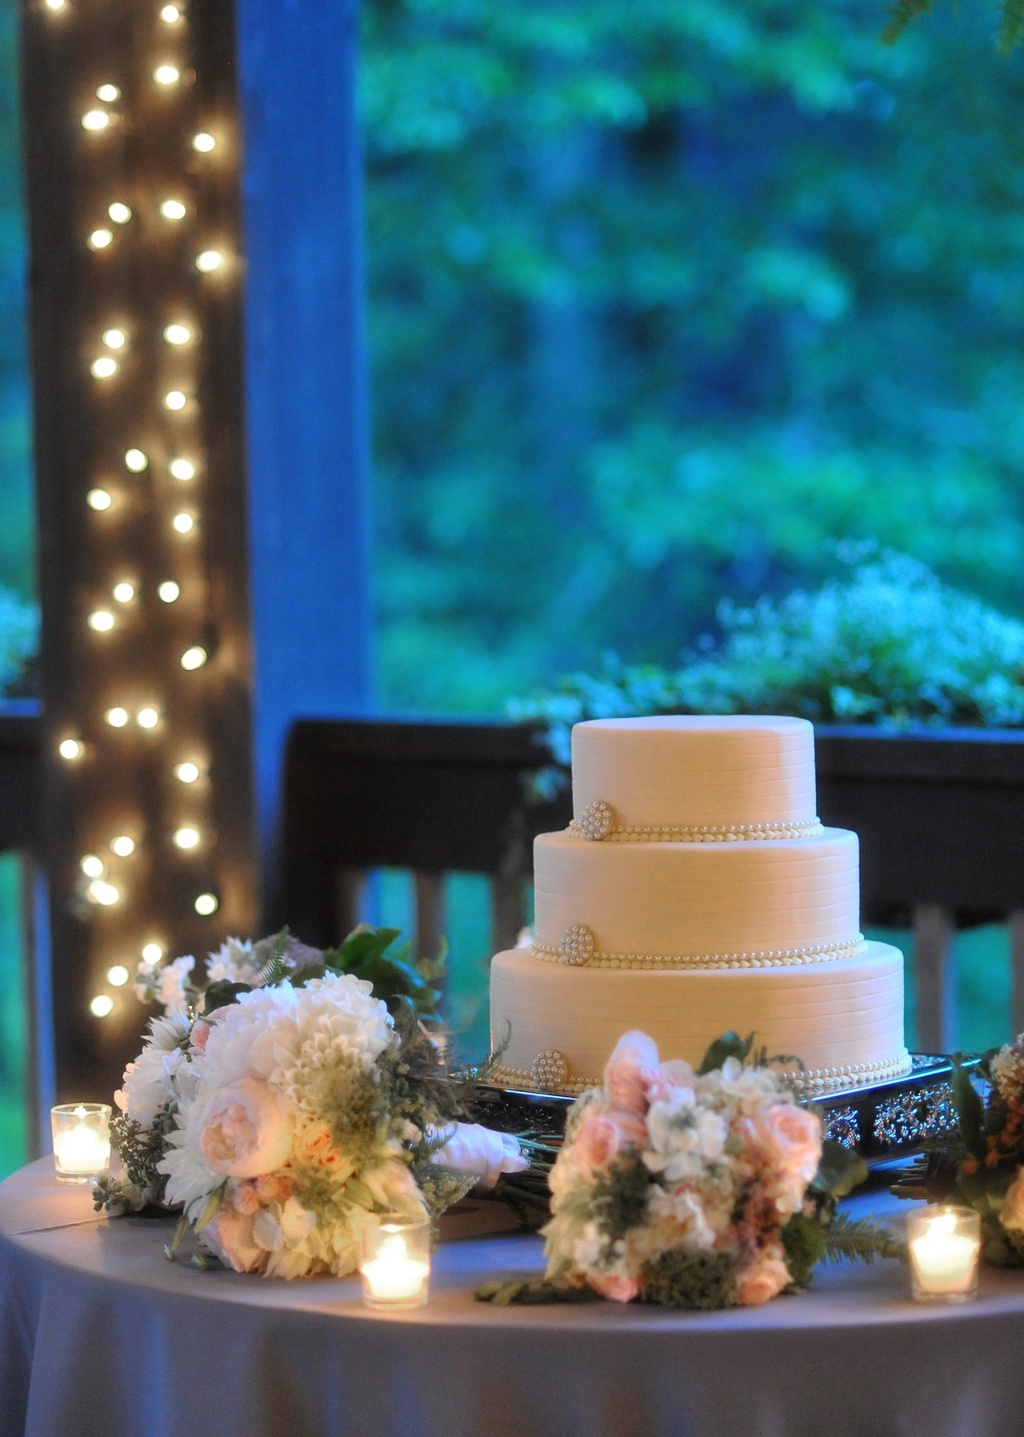 Classic-wedding-cake-north-carolina-venue.full